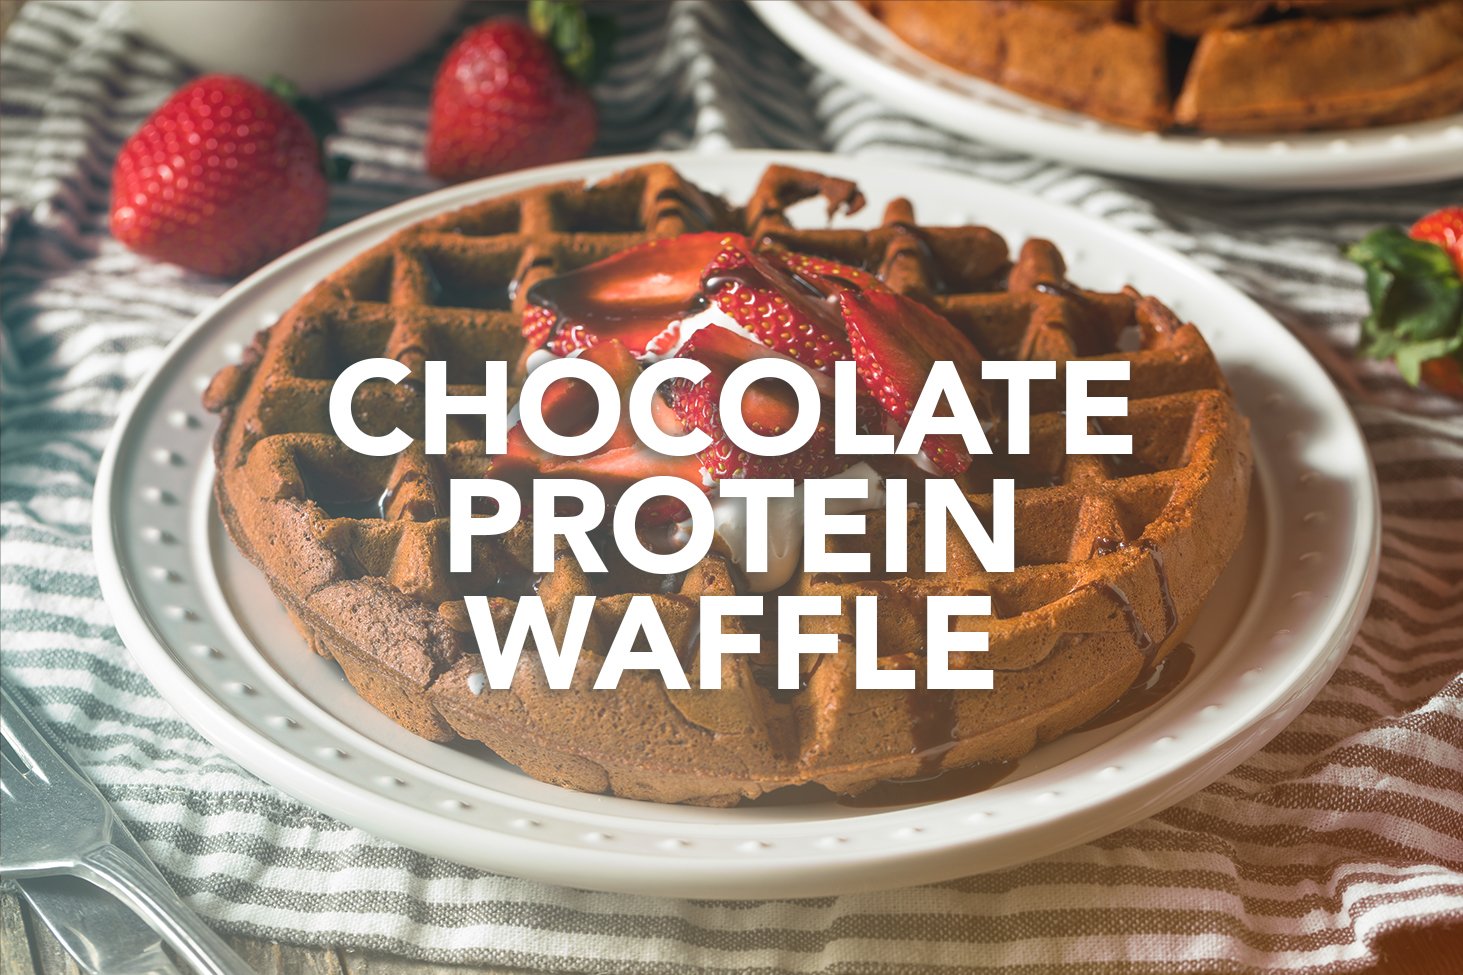 Rivalus At Home Recipes: Chocolate Protein Waffle